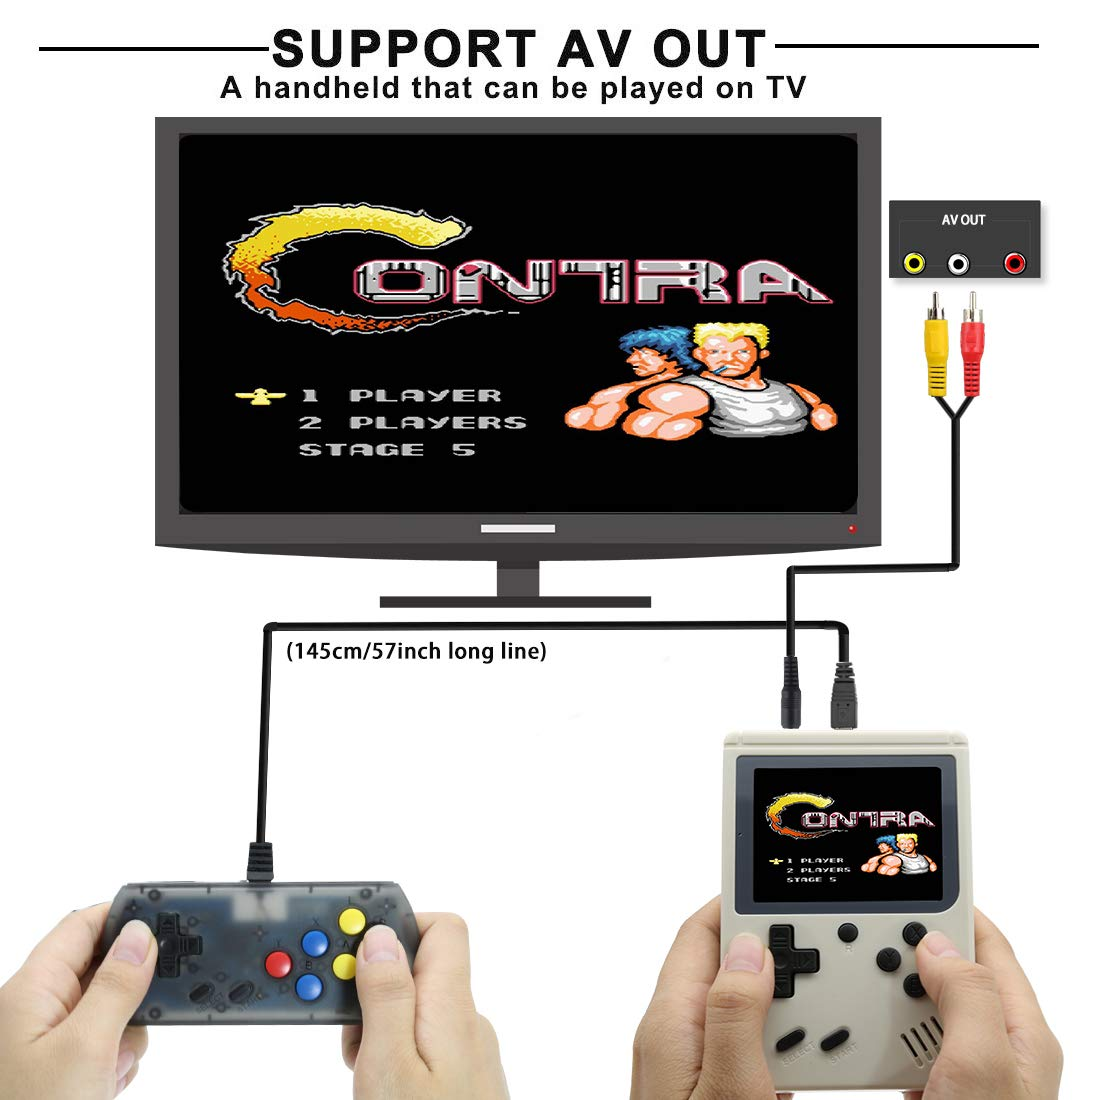 AKTOUGST Retro Handheld Game Console FC System 168 Classic Game Portable Video Game 3 Inch 2 Player Plus Extra Joystick Game Console Support on TV,Presend for Kid Adult, (White) by AKTOUGST (Image #3)